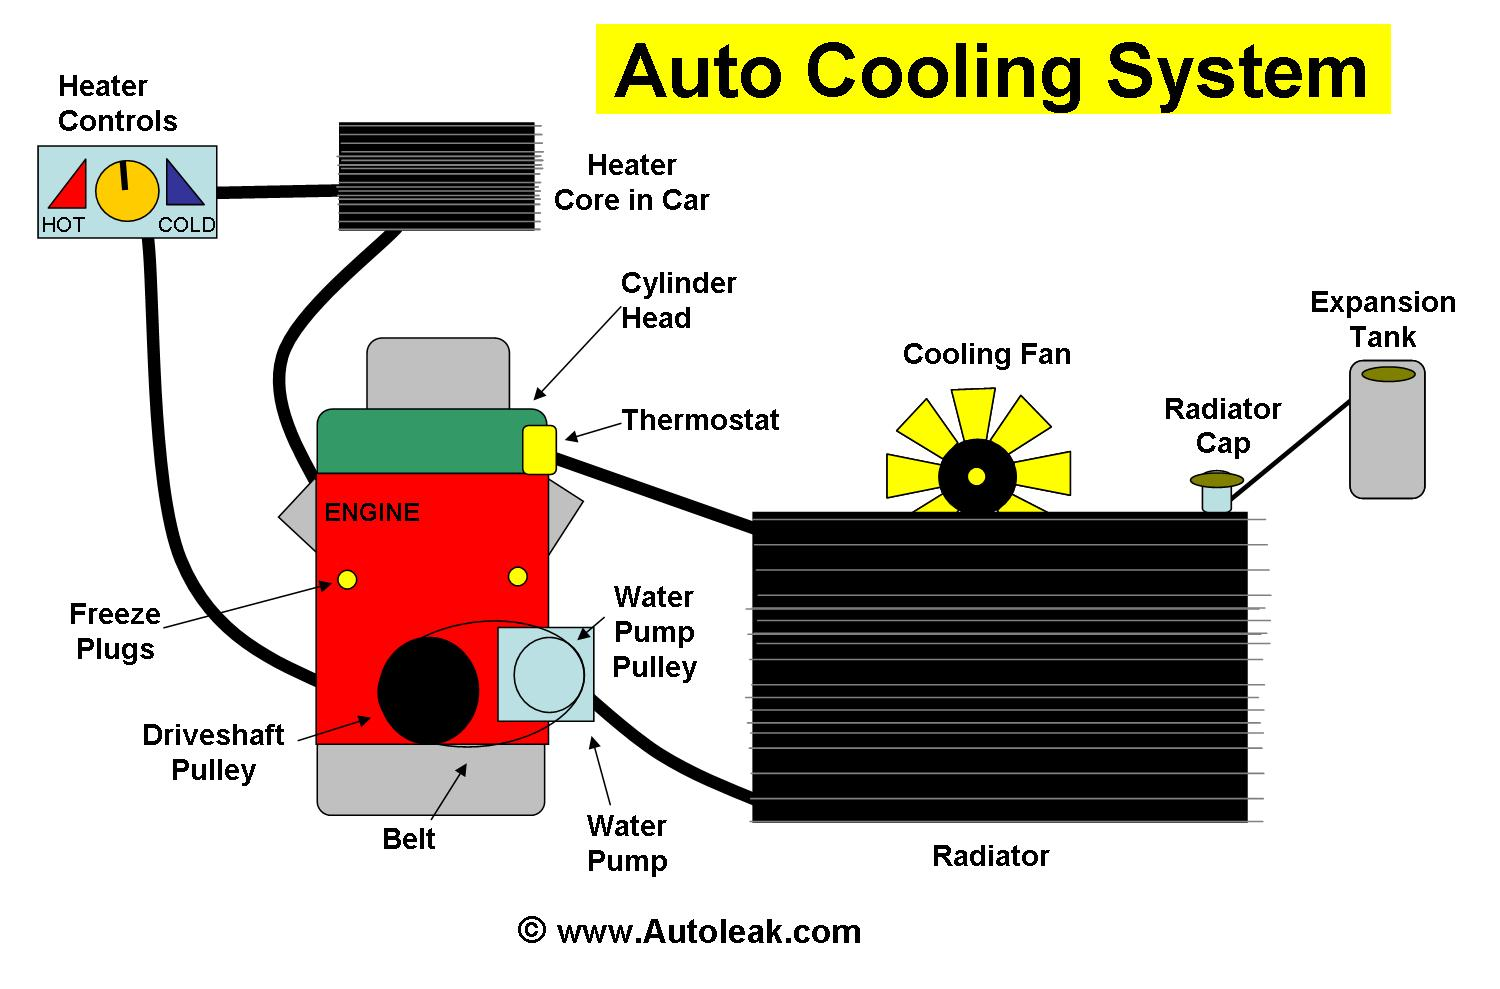 Cooling System Antifreeze Coolant Leak - Orange or Green = Coolant